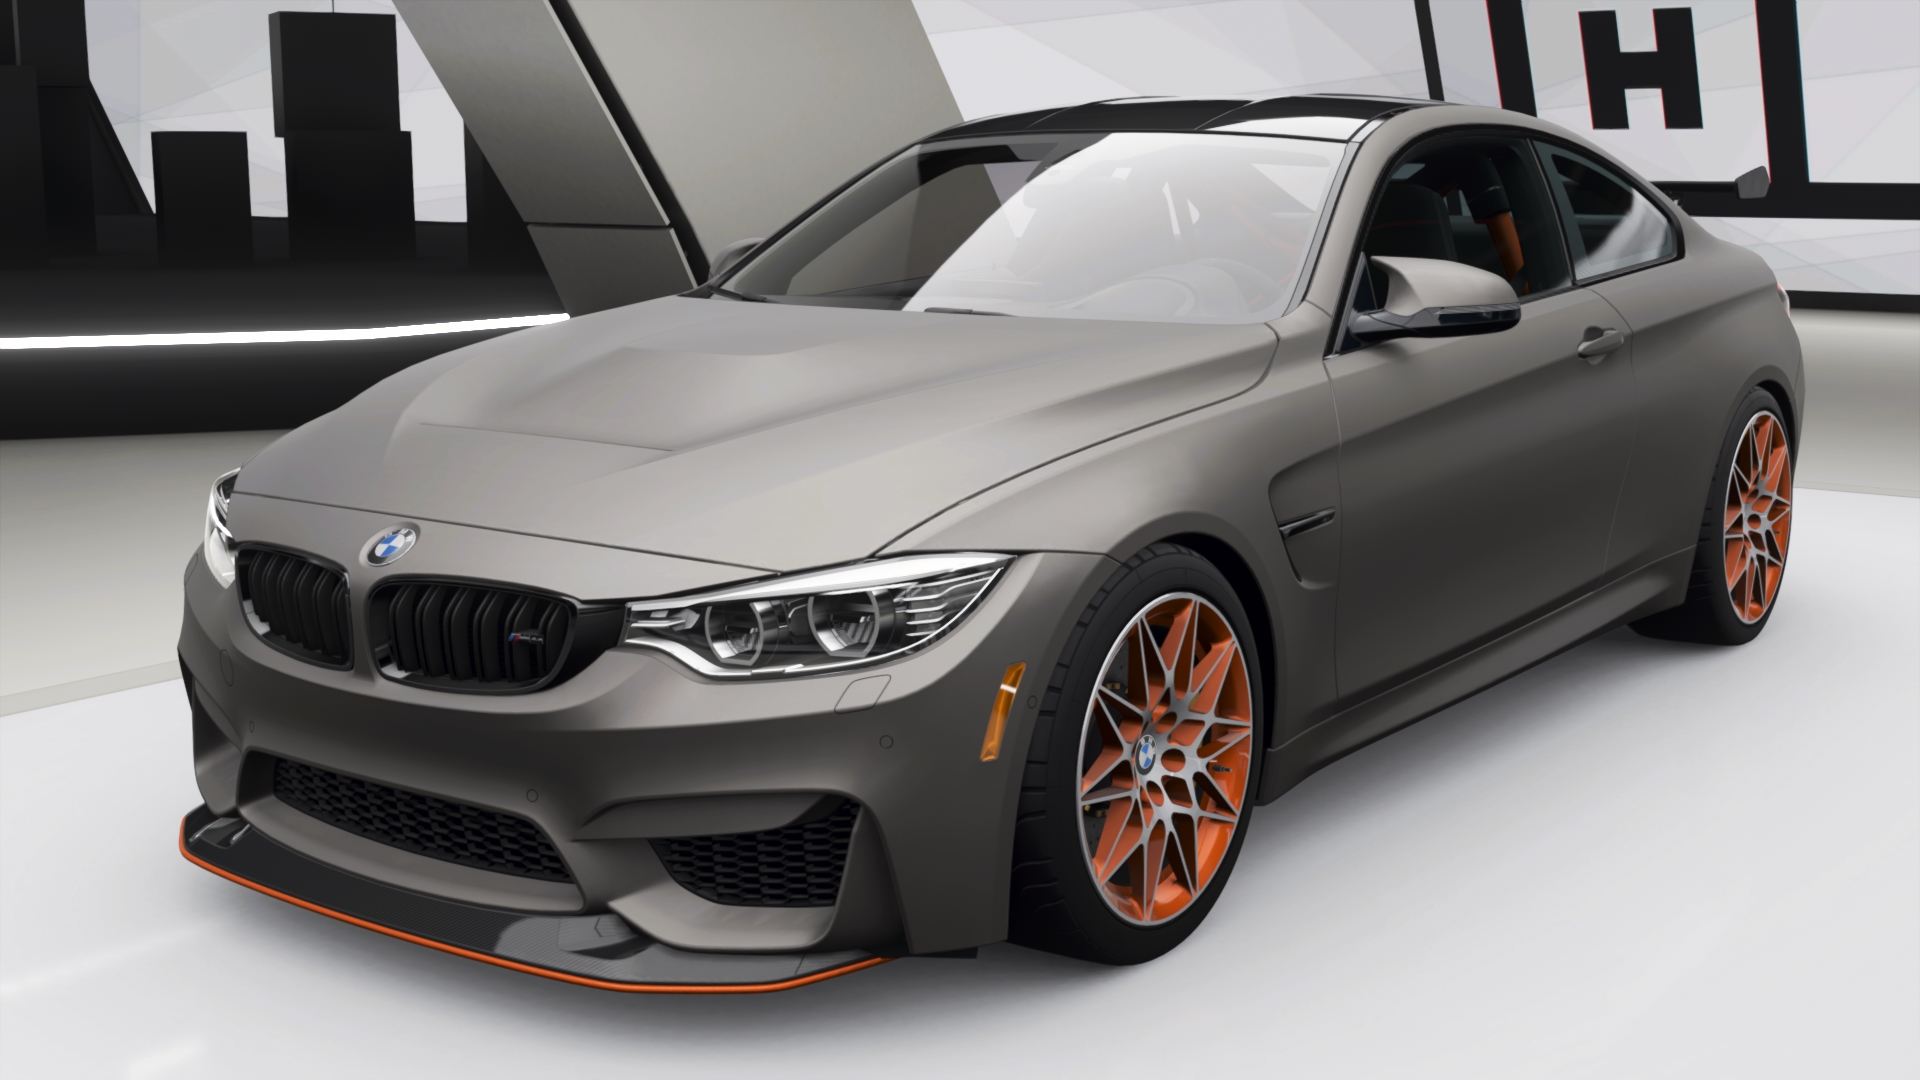 Bmw M4 Gts In Forza Horizon 4